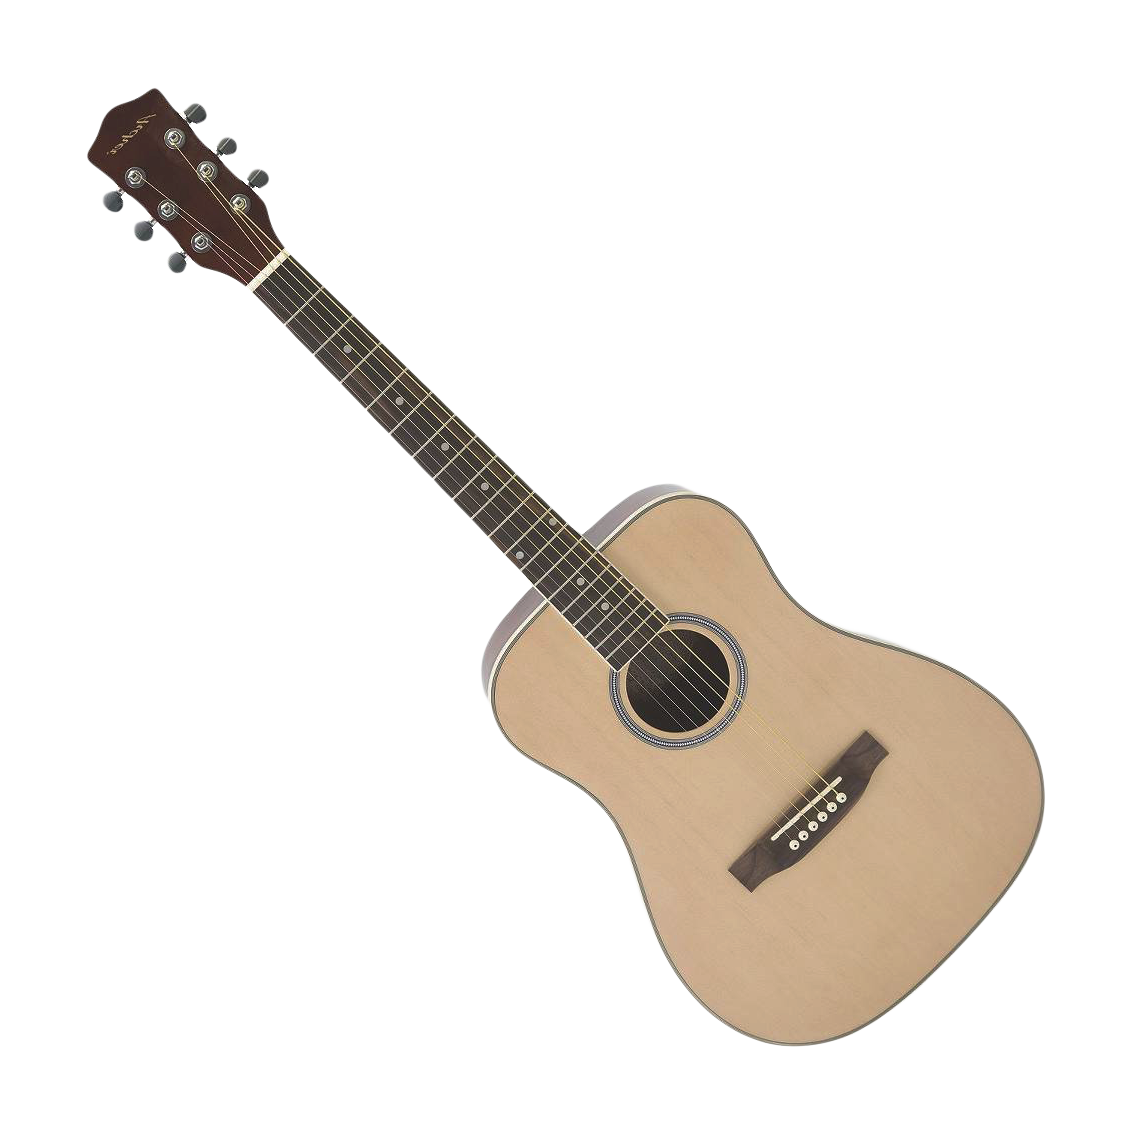 Guitar transparent free icons. Png clear background jpg freeuse